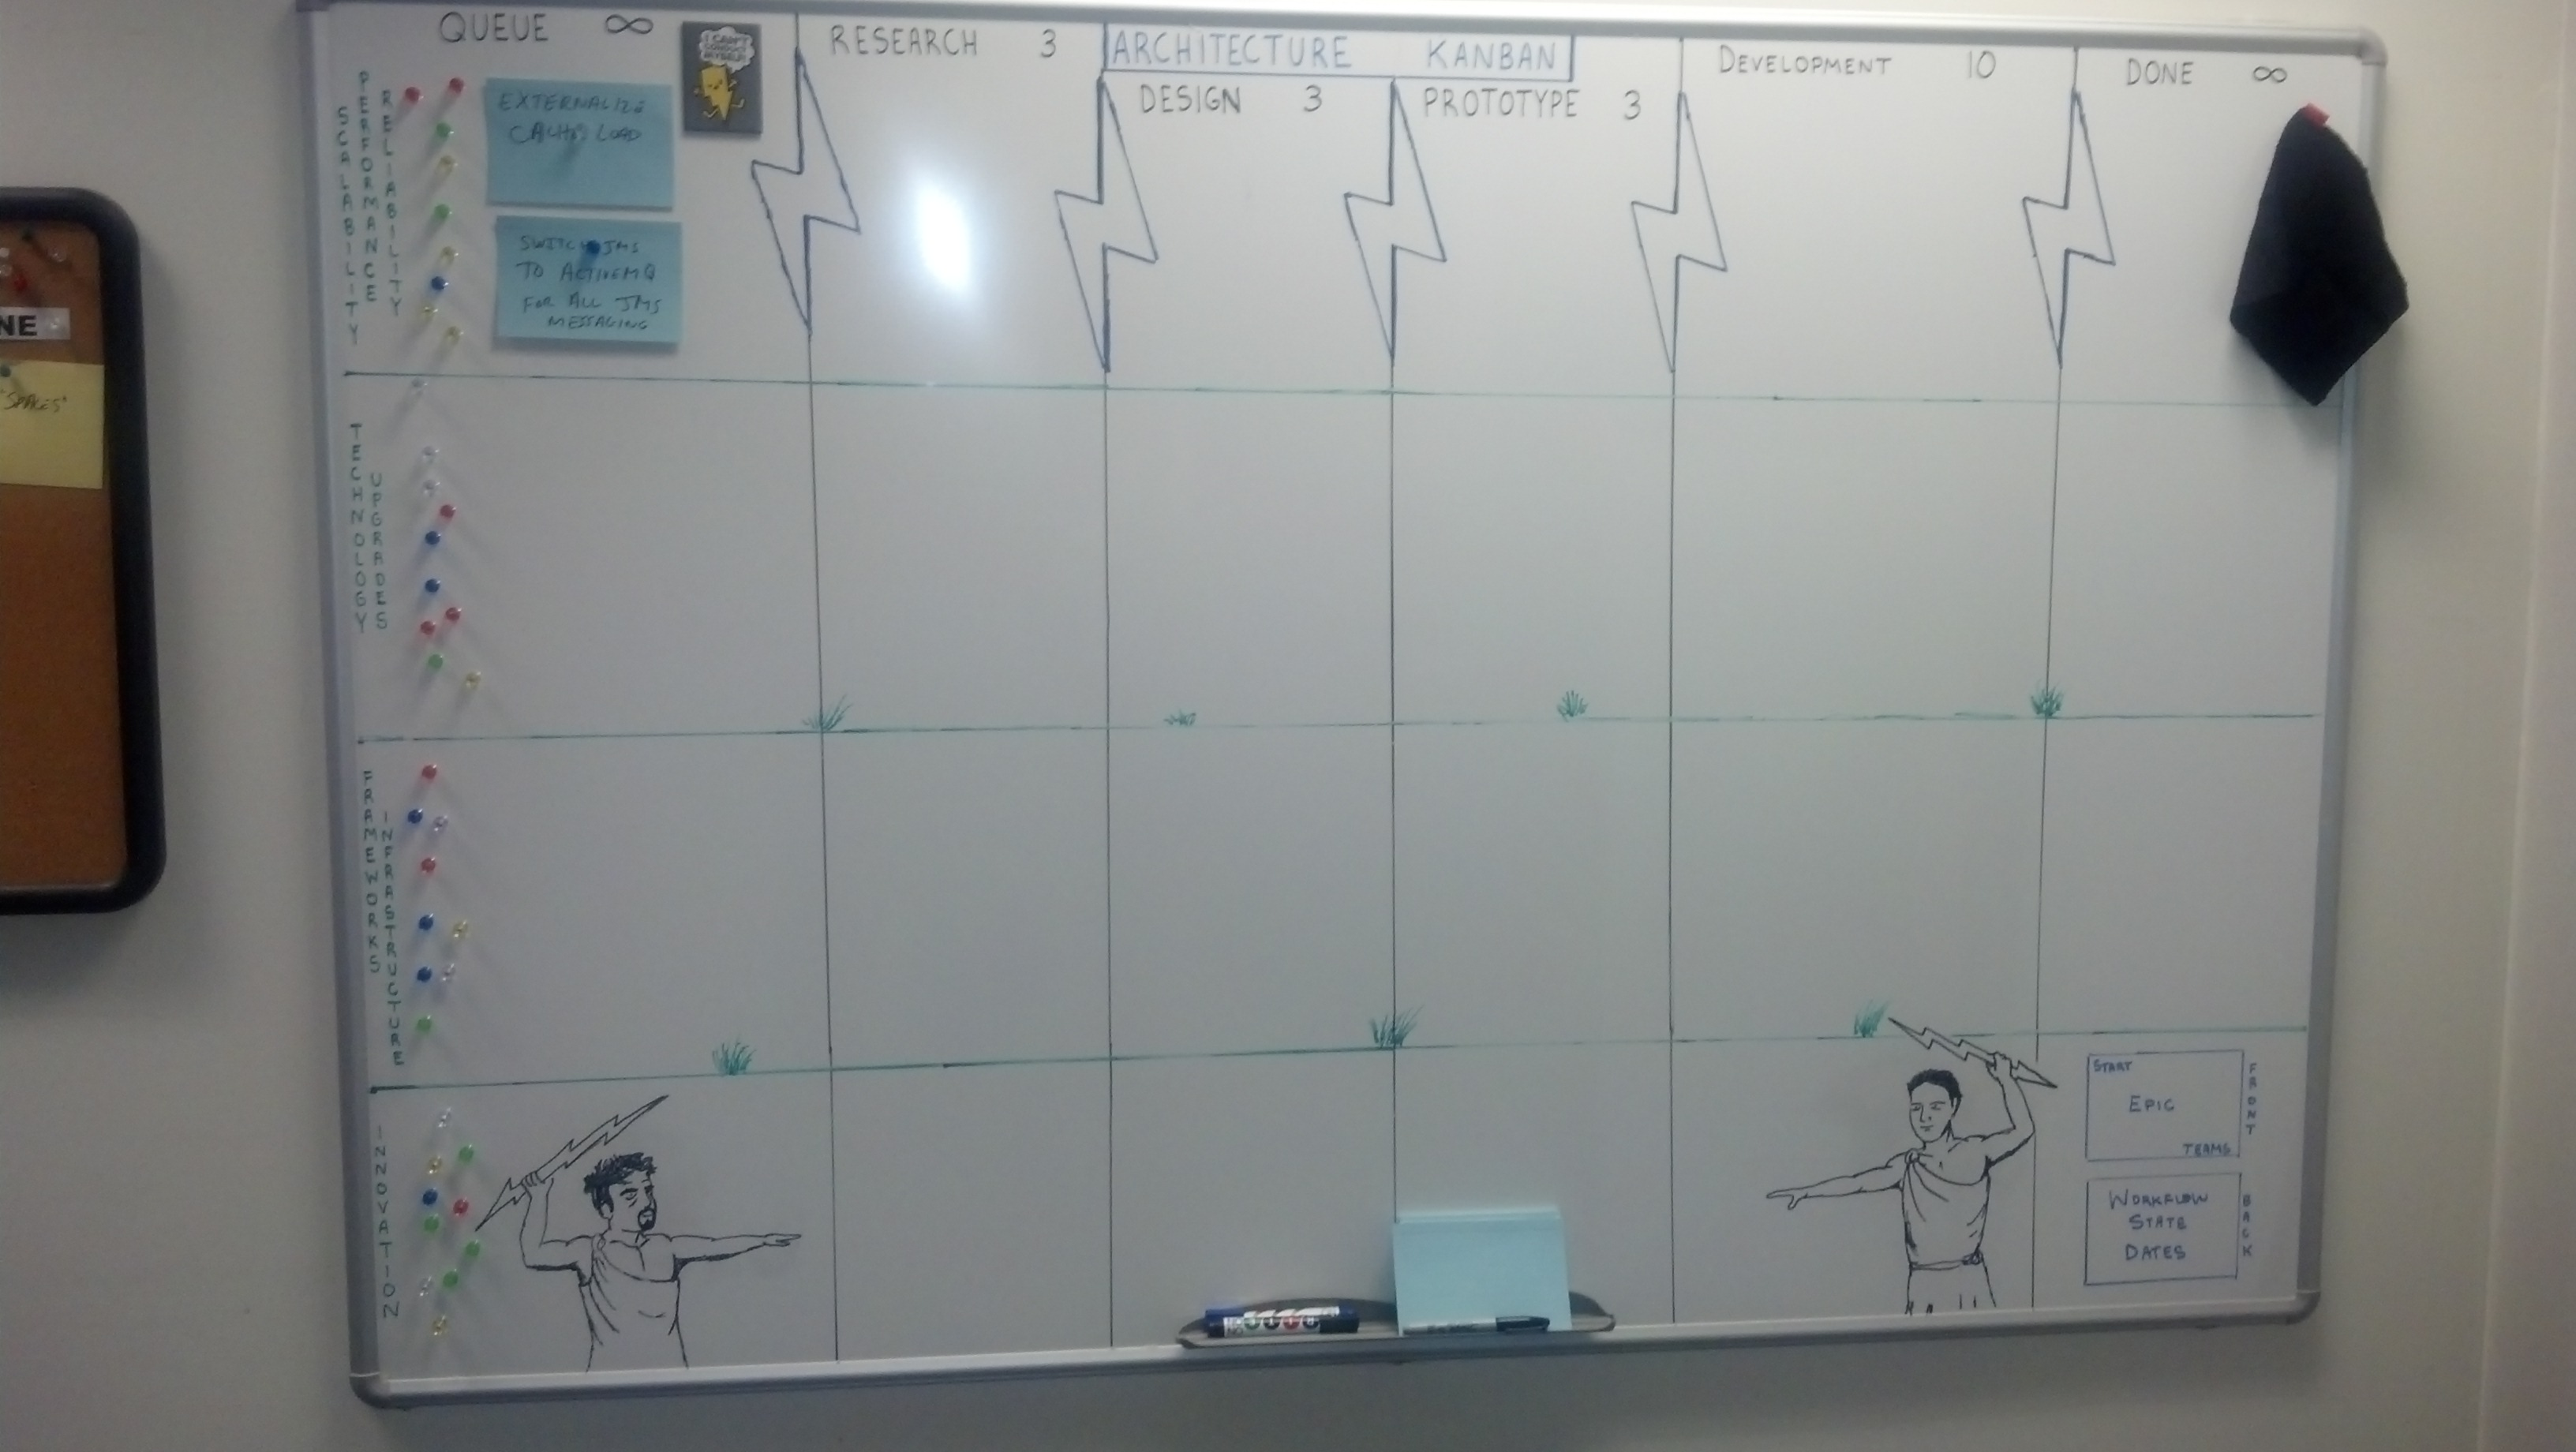 Scaled agile framework the gods have spoken iile architecture kanban board the scaled agile framework has served xflitez Image collections